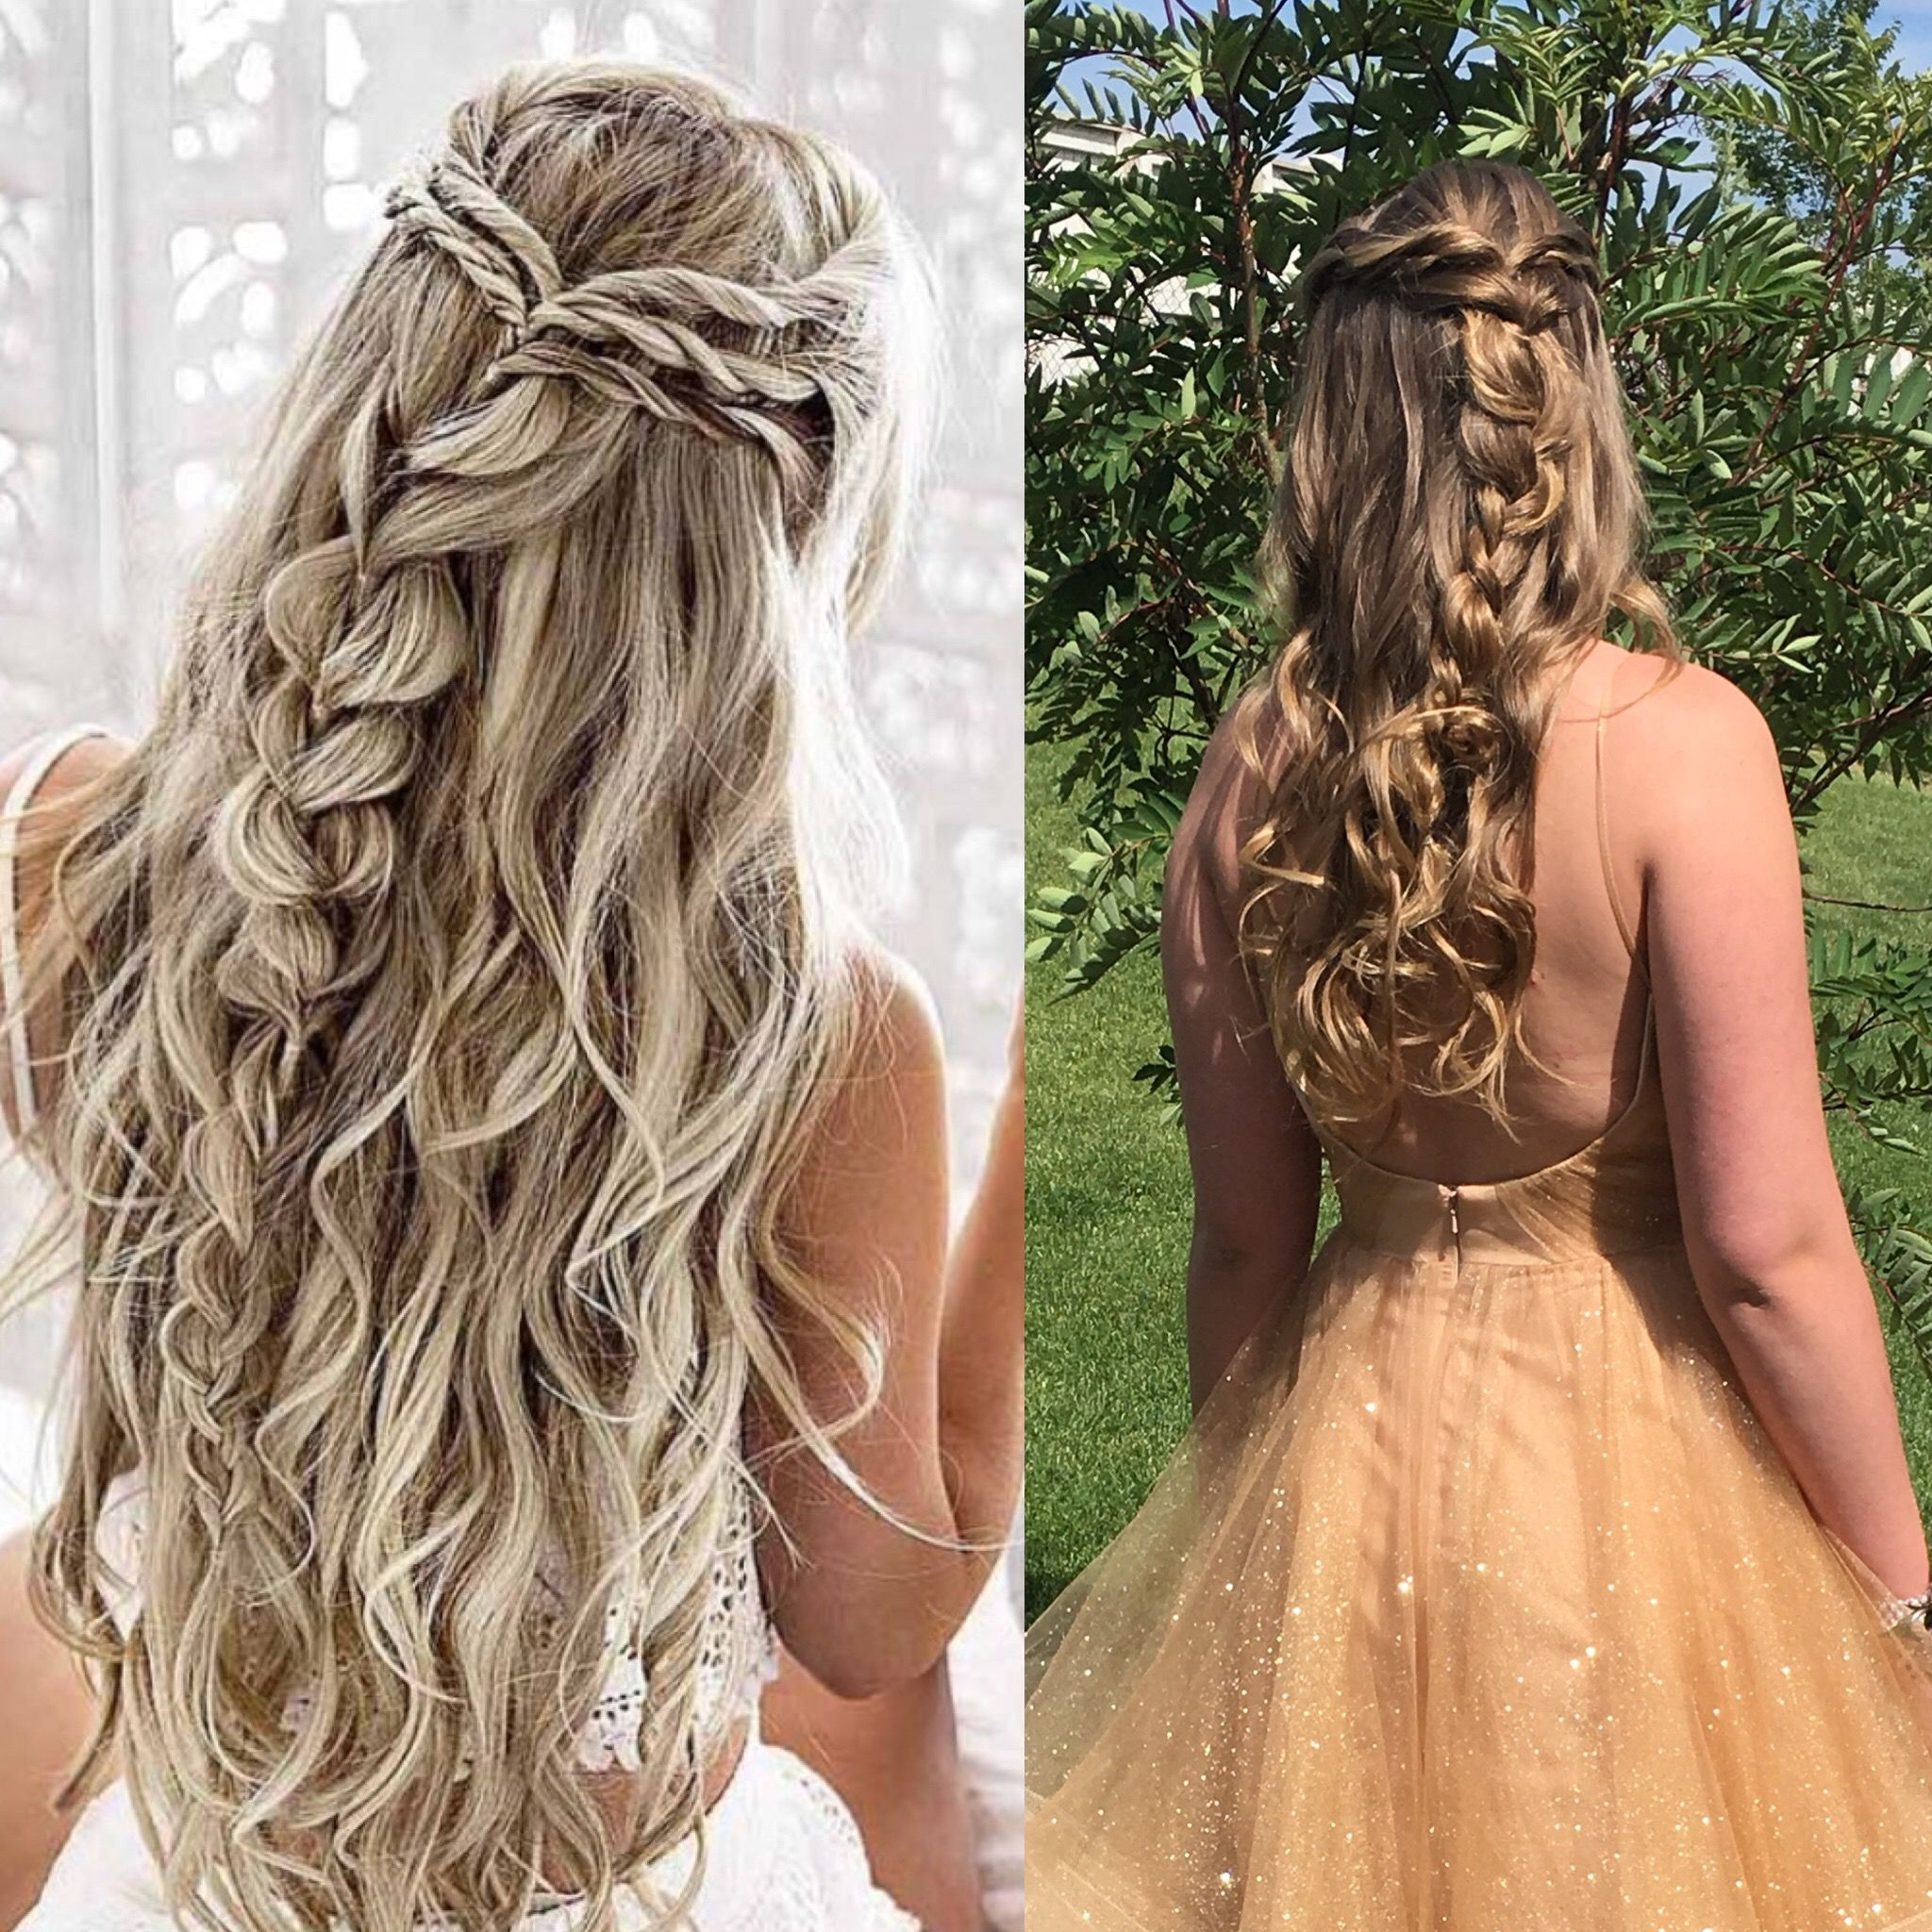 Graduation 2018 Classof2018 Hair And Makeup By Beautiful Calgary Bride Wedding Hair And Makeup Hair Makeup Wedding Hairstyles